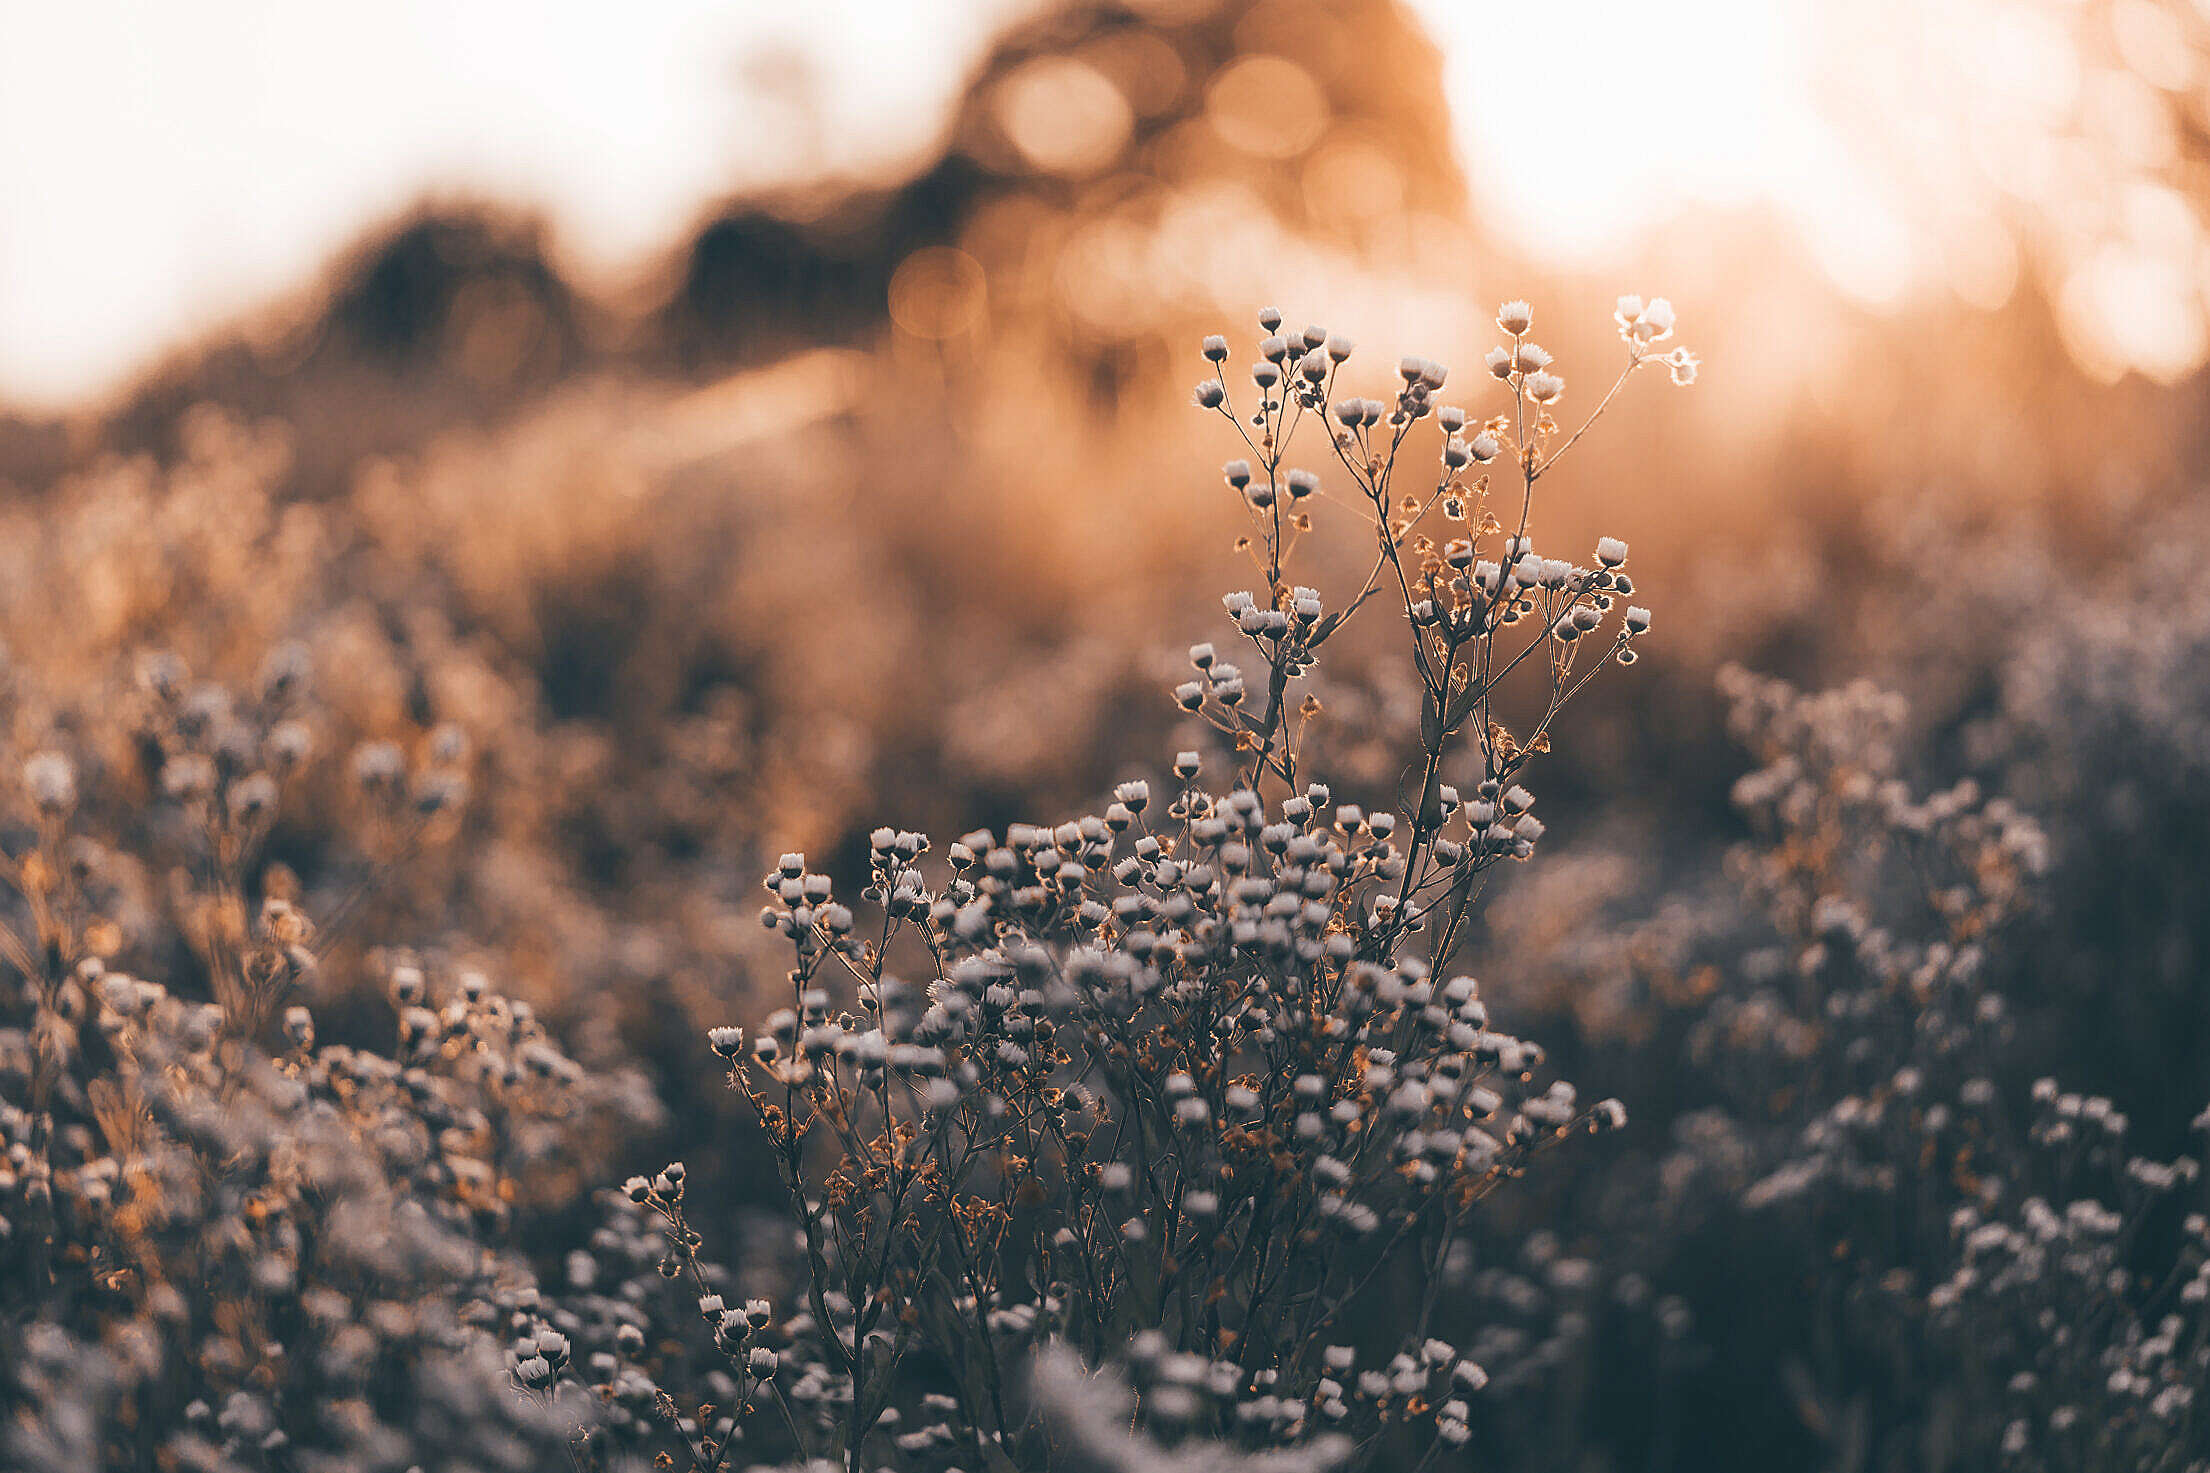 Meadow Grass Against The Golden Hour Sun Free Stock Photo